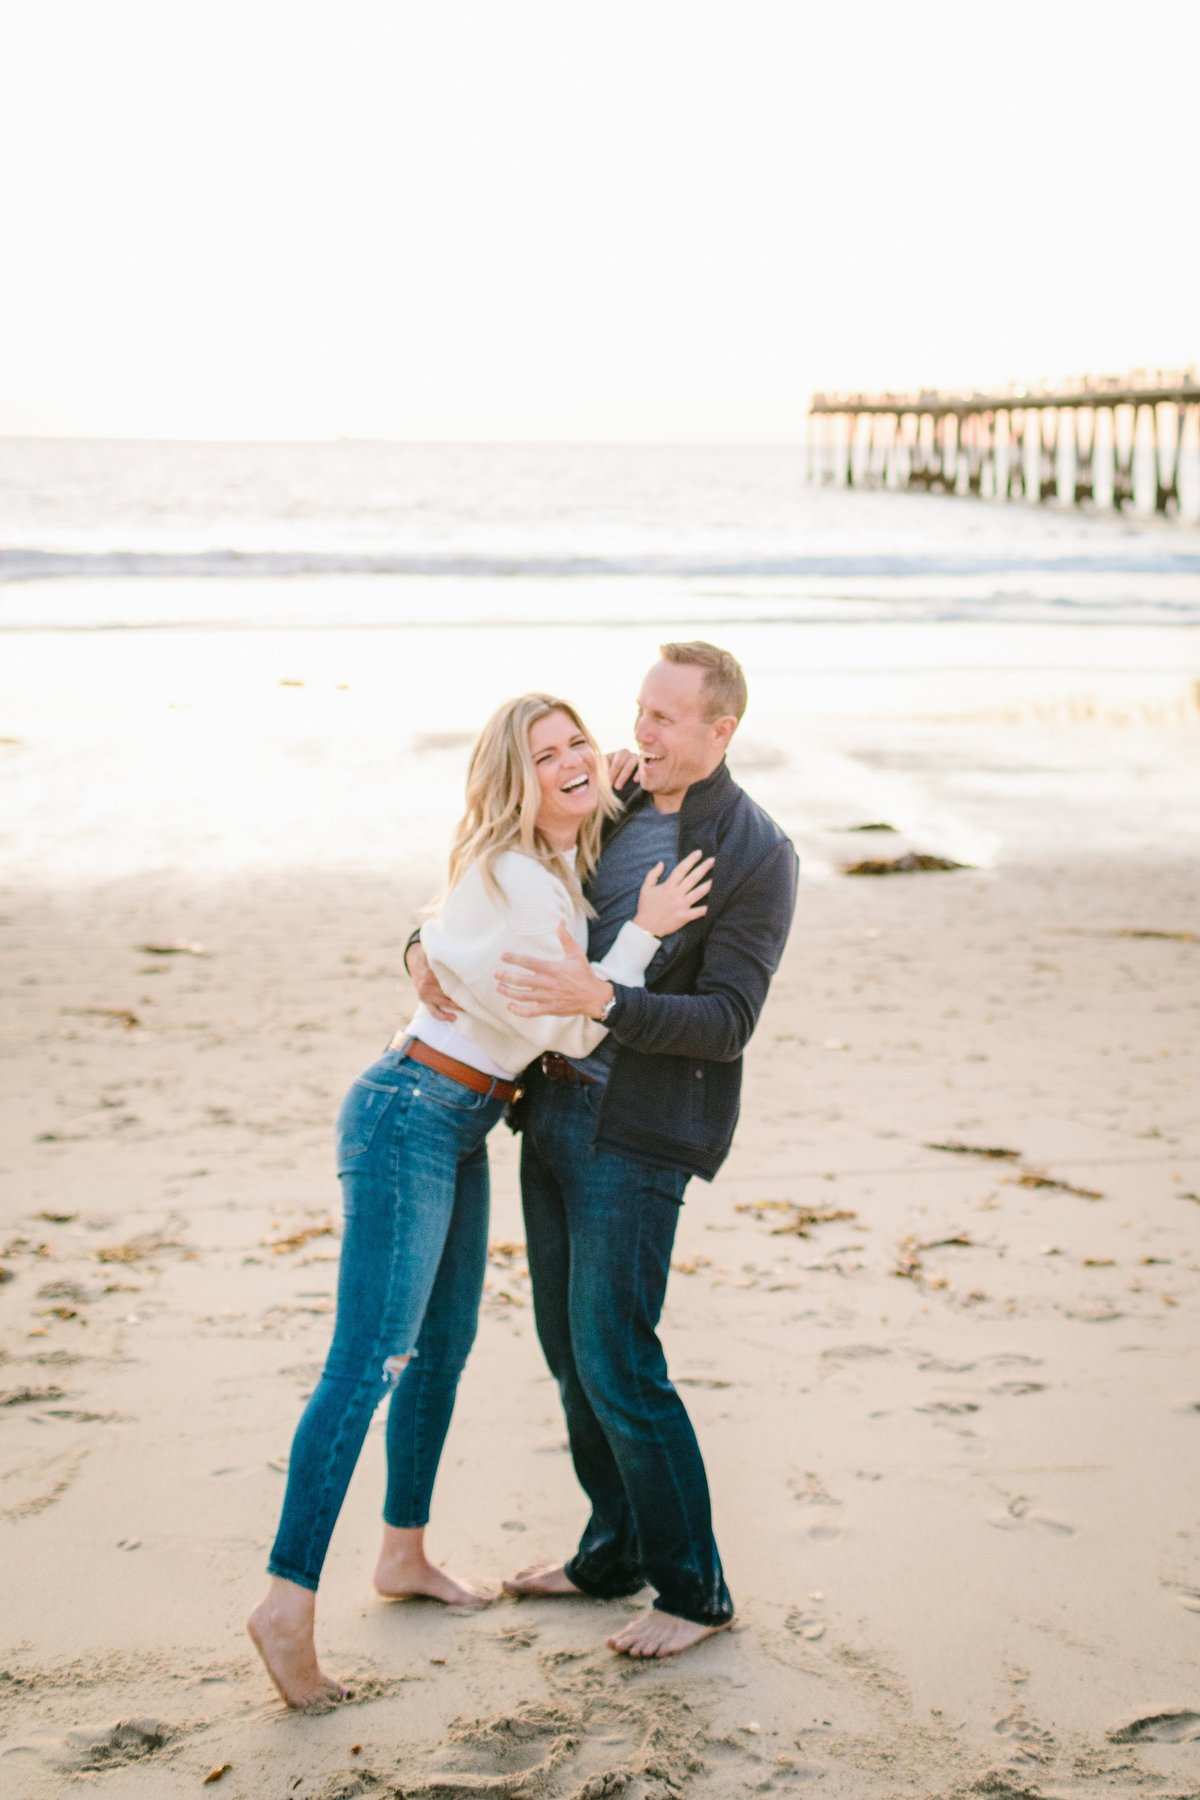 Best California Engagement Photographer-Jodee Debes Photography-10